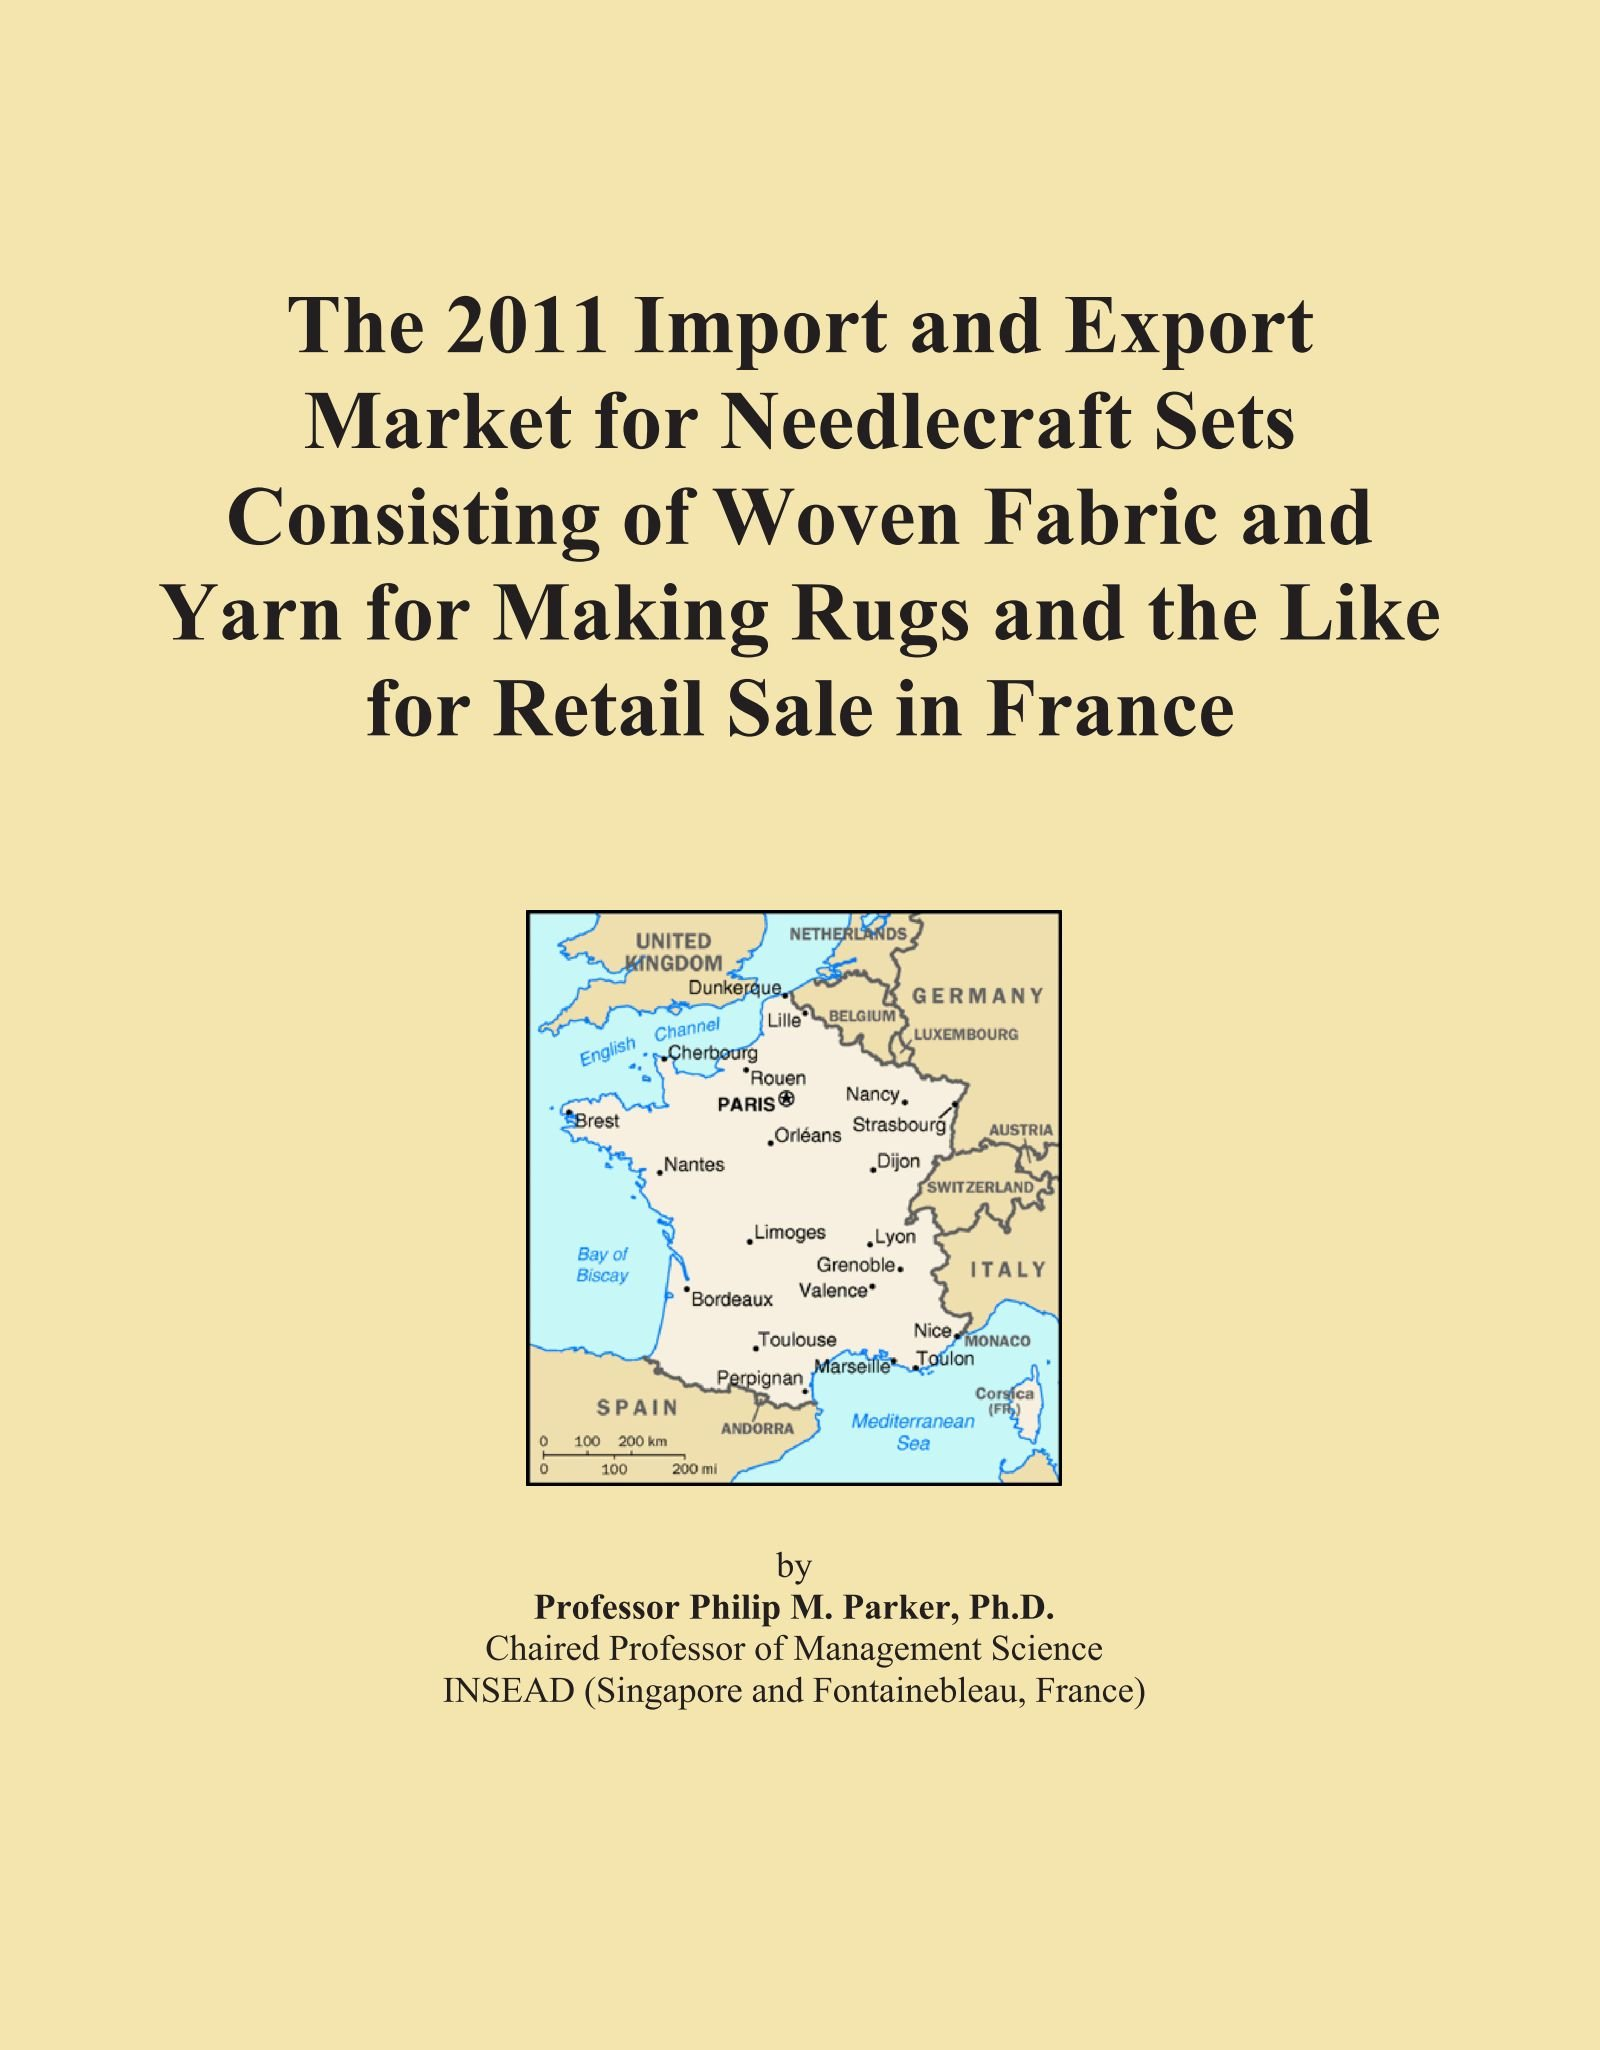 The 2011 Import and Export Market for Needlecraft Sets Consisting of Woven Fabric and Yarn for Making Rugs and the Like for Retail Sale in France ebook